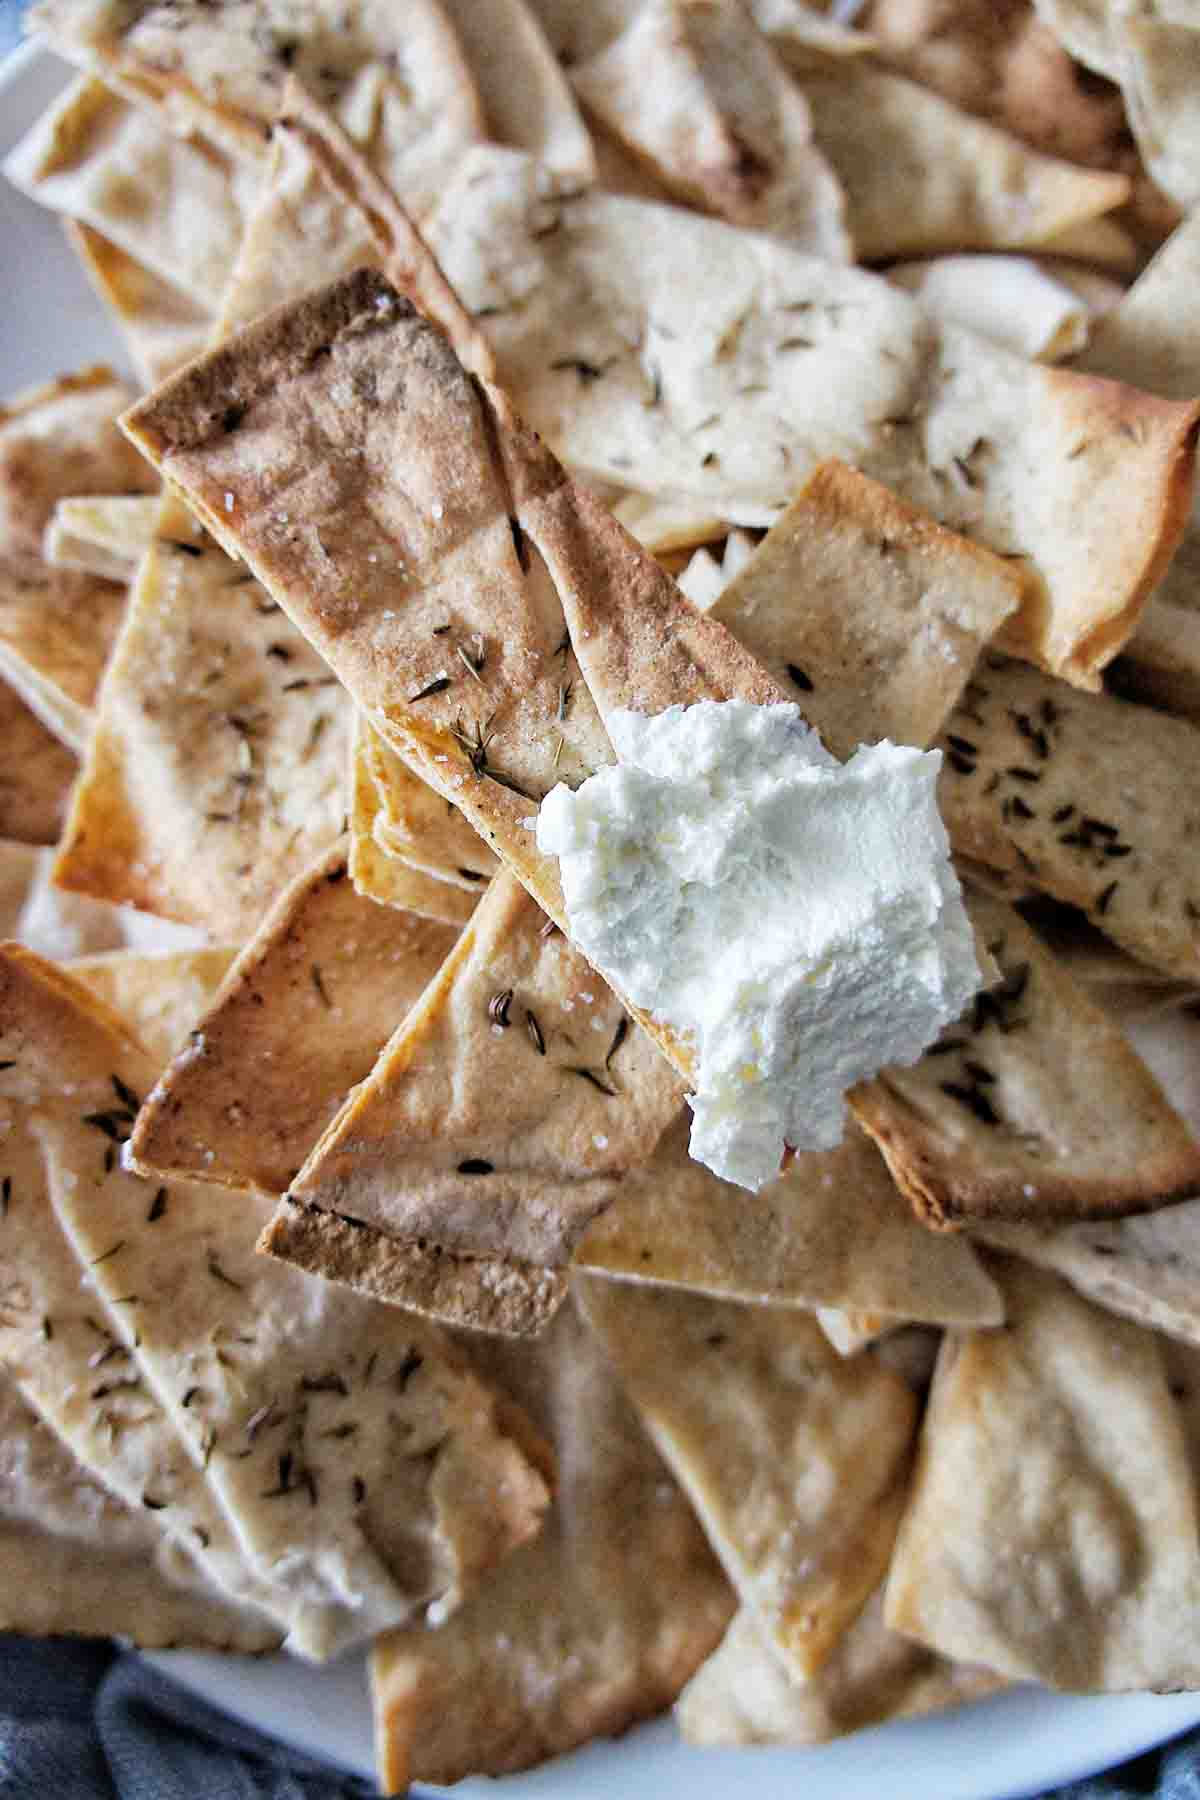 Pita Chip with white dip on one end on a plate full of chips